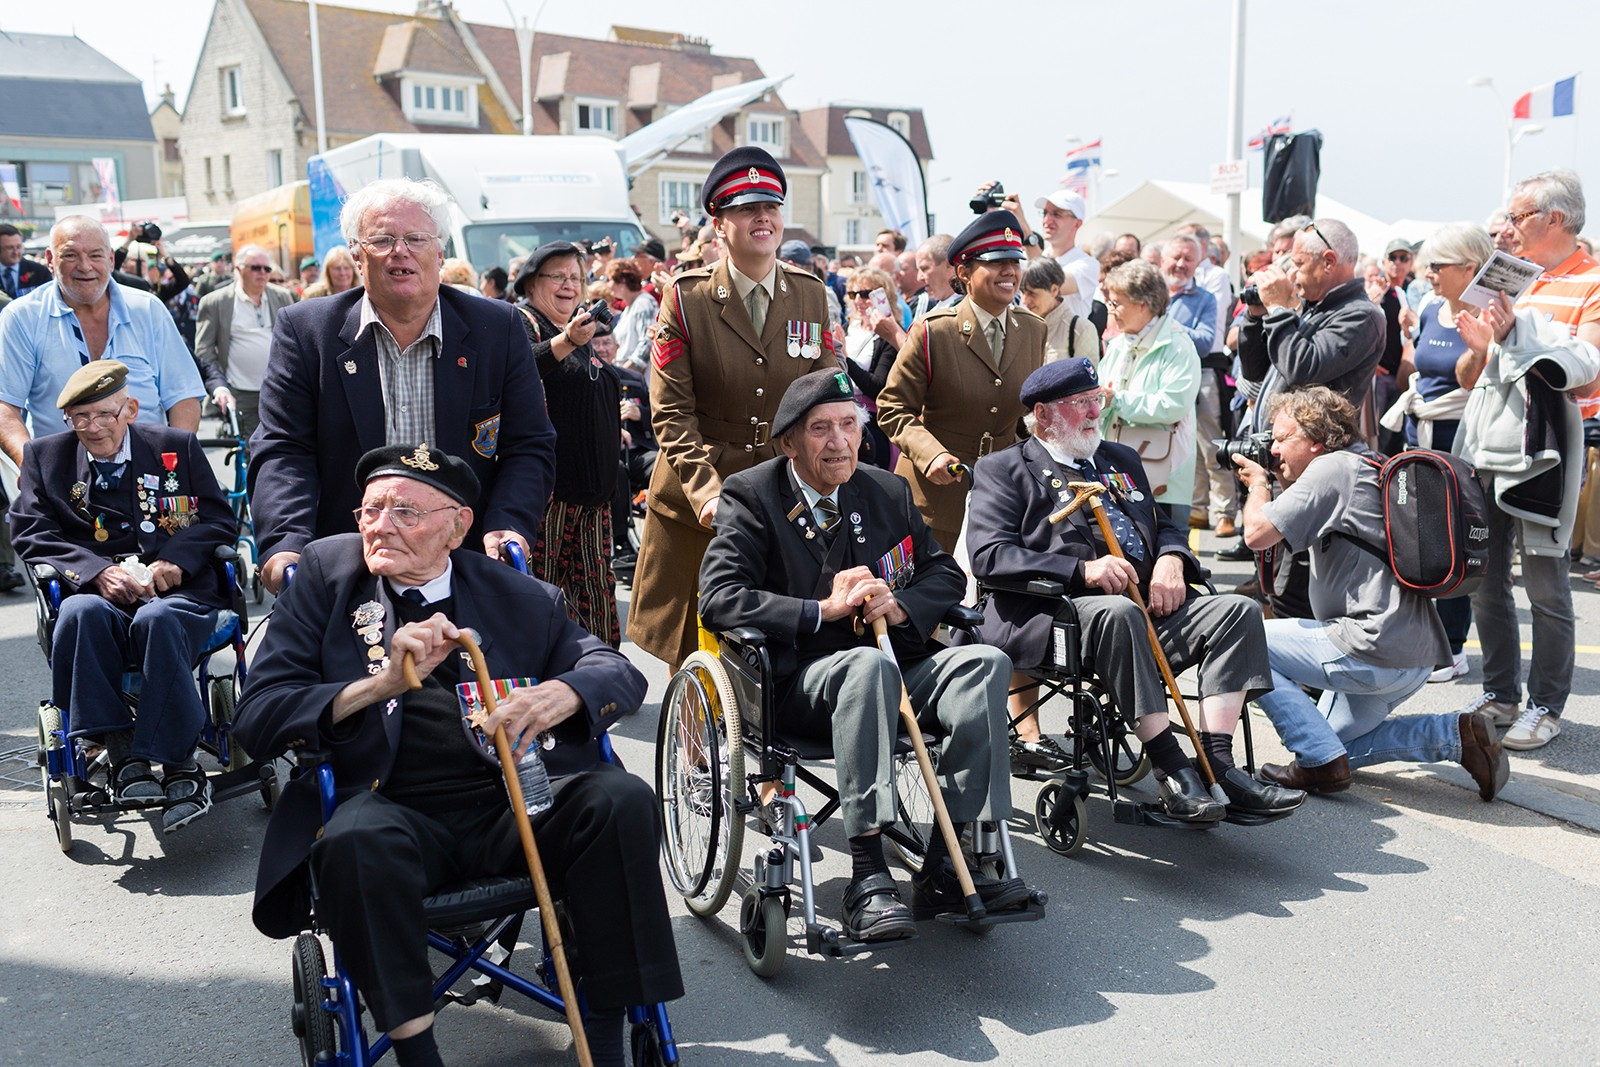 Normandy Veterans celebrated in Arromanches